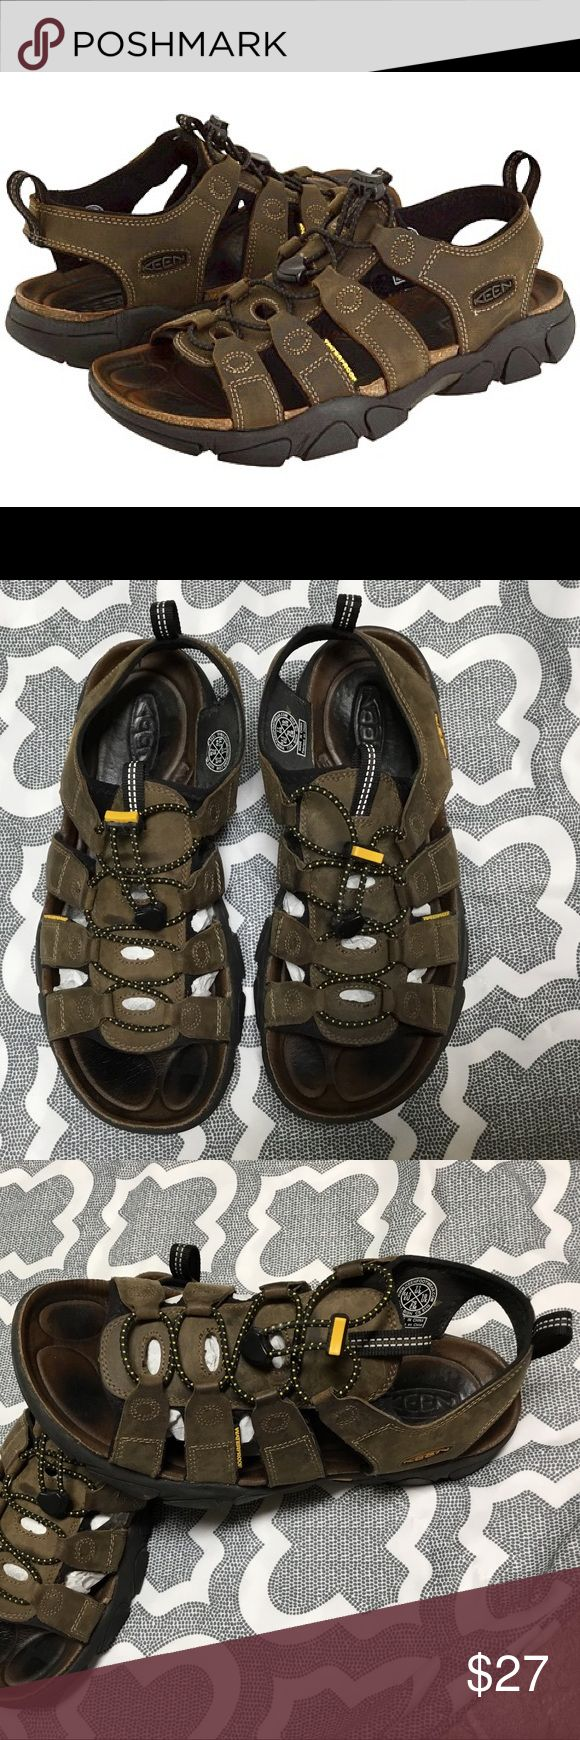 EUC KEEN Daytona Sandals Excellent used condition. Keen Daytona waterproof leather men's sandals. These will take you from trail to city without missing a beat. Seriously, only worn 5 times and have no signs of wear or flaws. Adjustable elastic tightening laces, cork beds with water proof leather for a comfy feel under foot. Keen Shoes Sandals & Flip-Flops